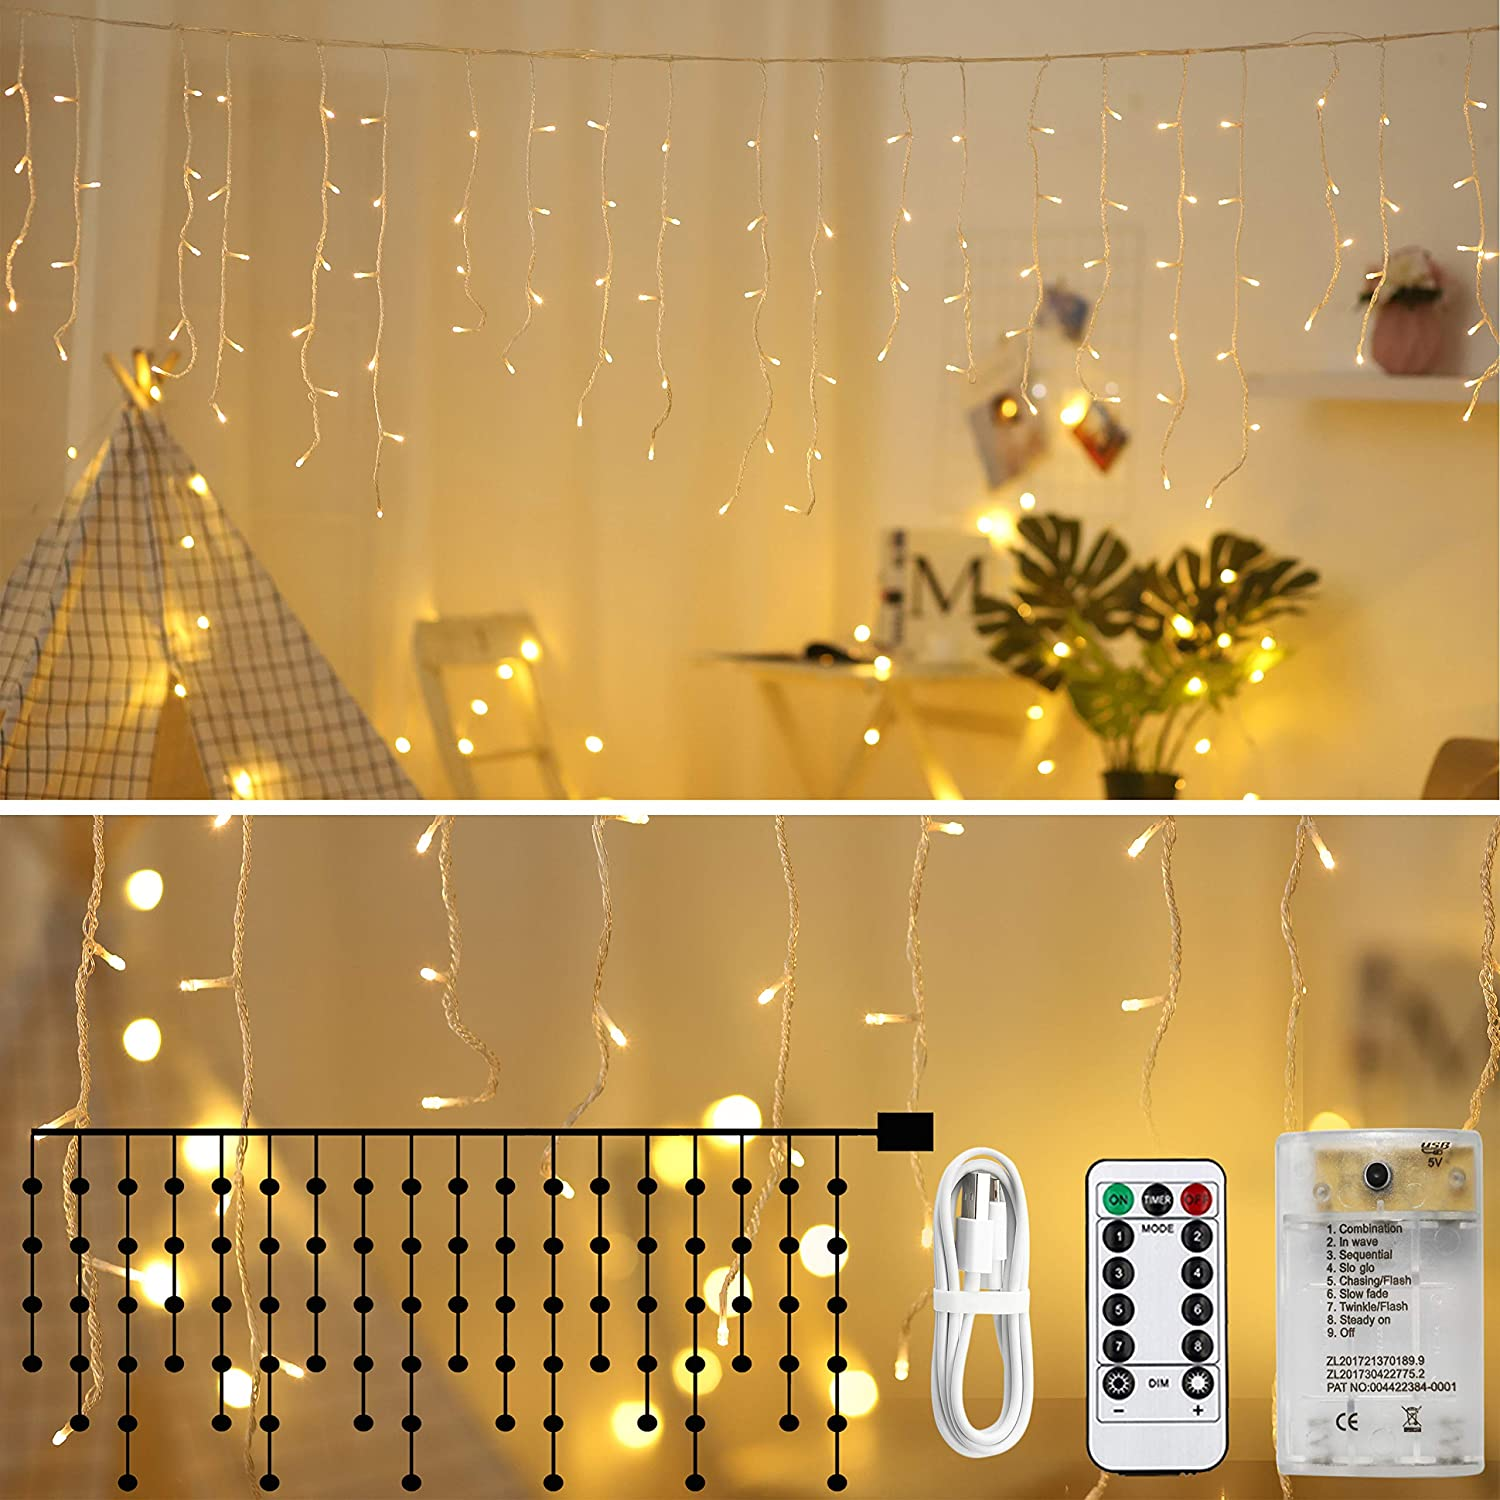 Zhuohao LED Icicle Lights, 10Ft 90 LED Window Curtain String Light, Waterproof Fairy String Lights for Indoor Outdoor Home Garden Wall Decorations, 8 Modes RC, USB Battery Powered, Warm White